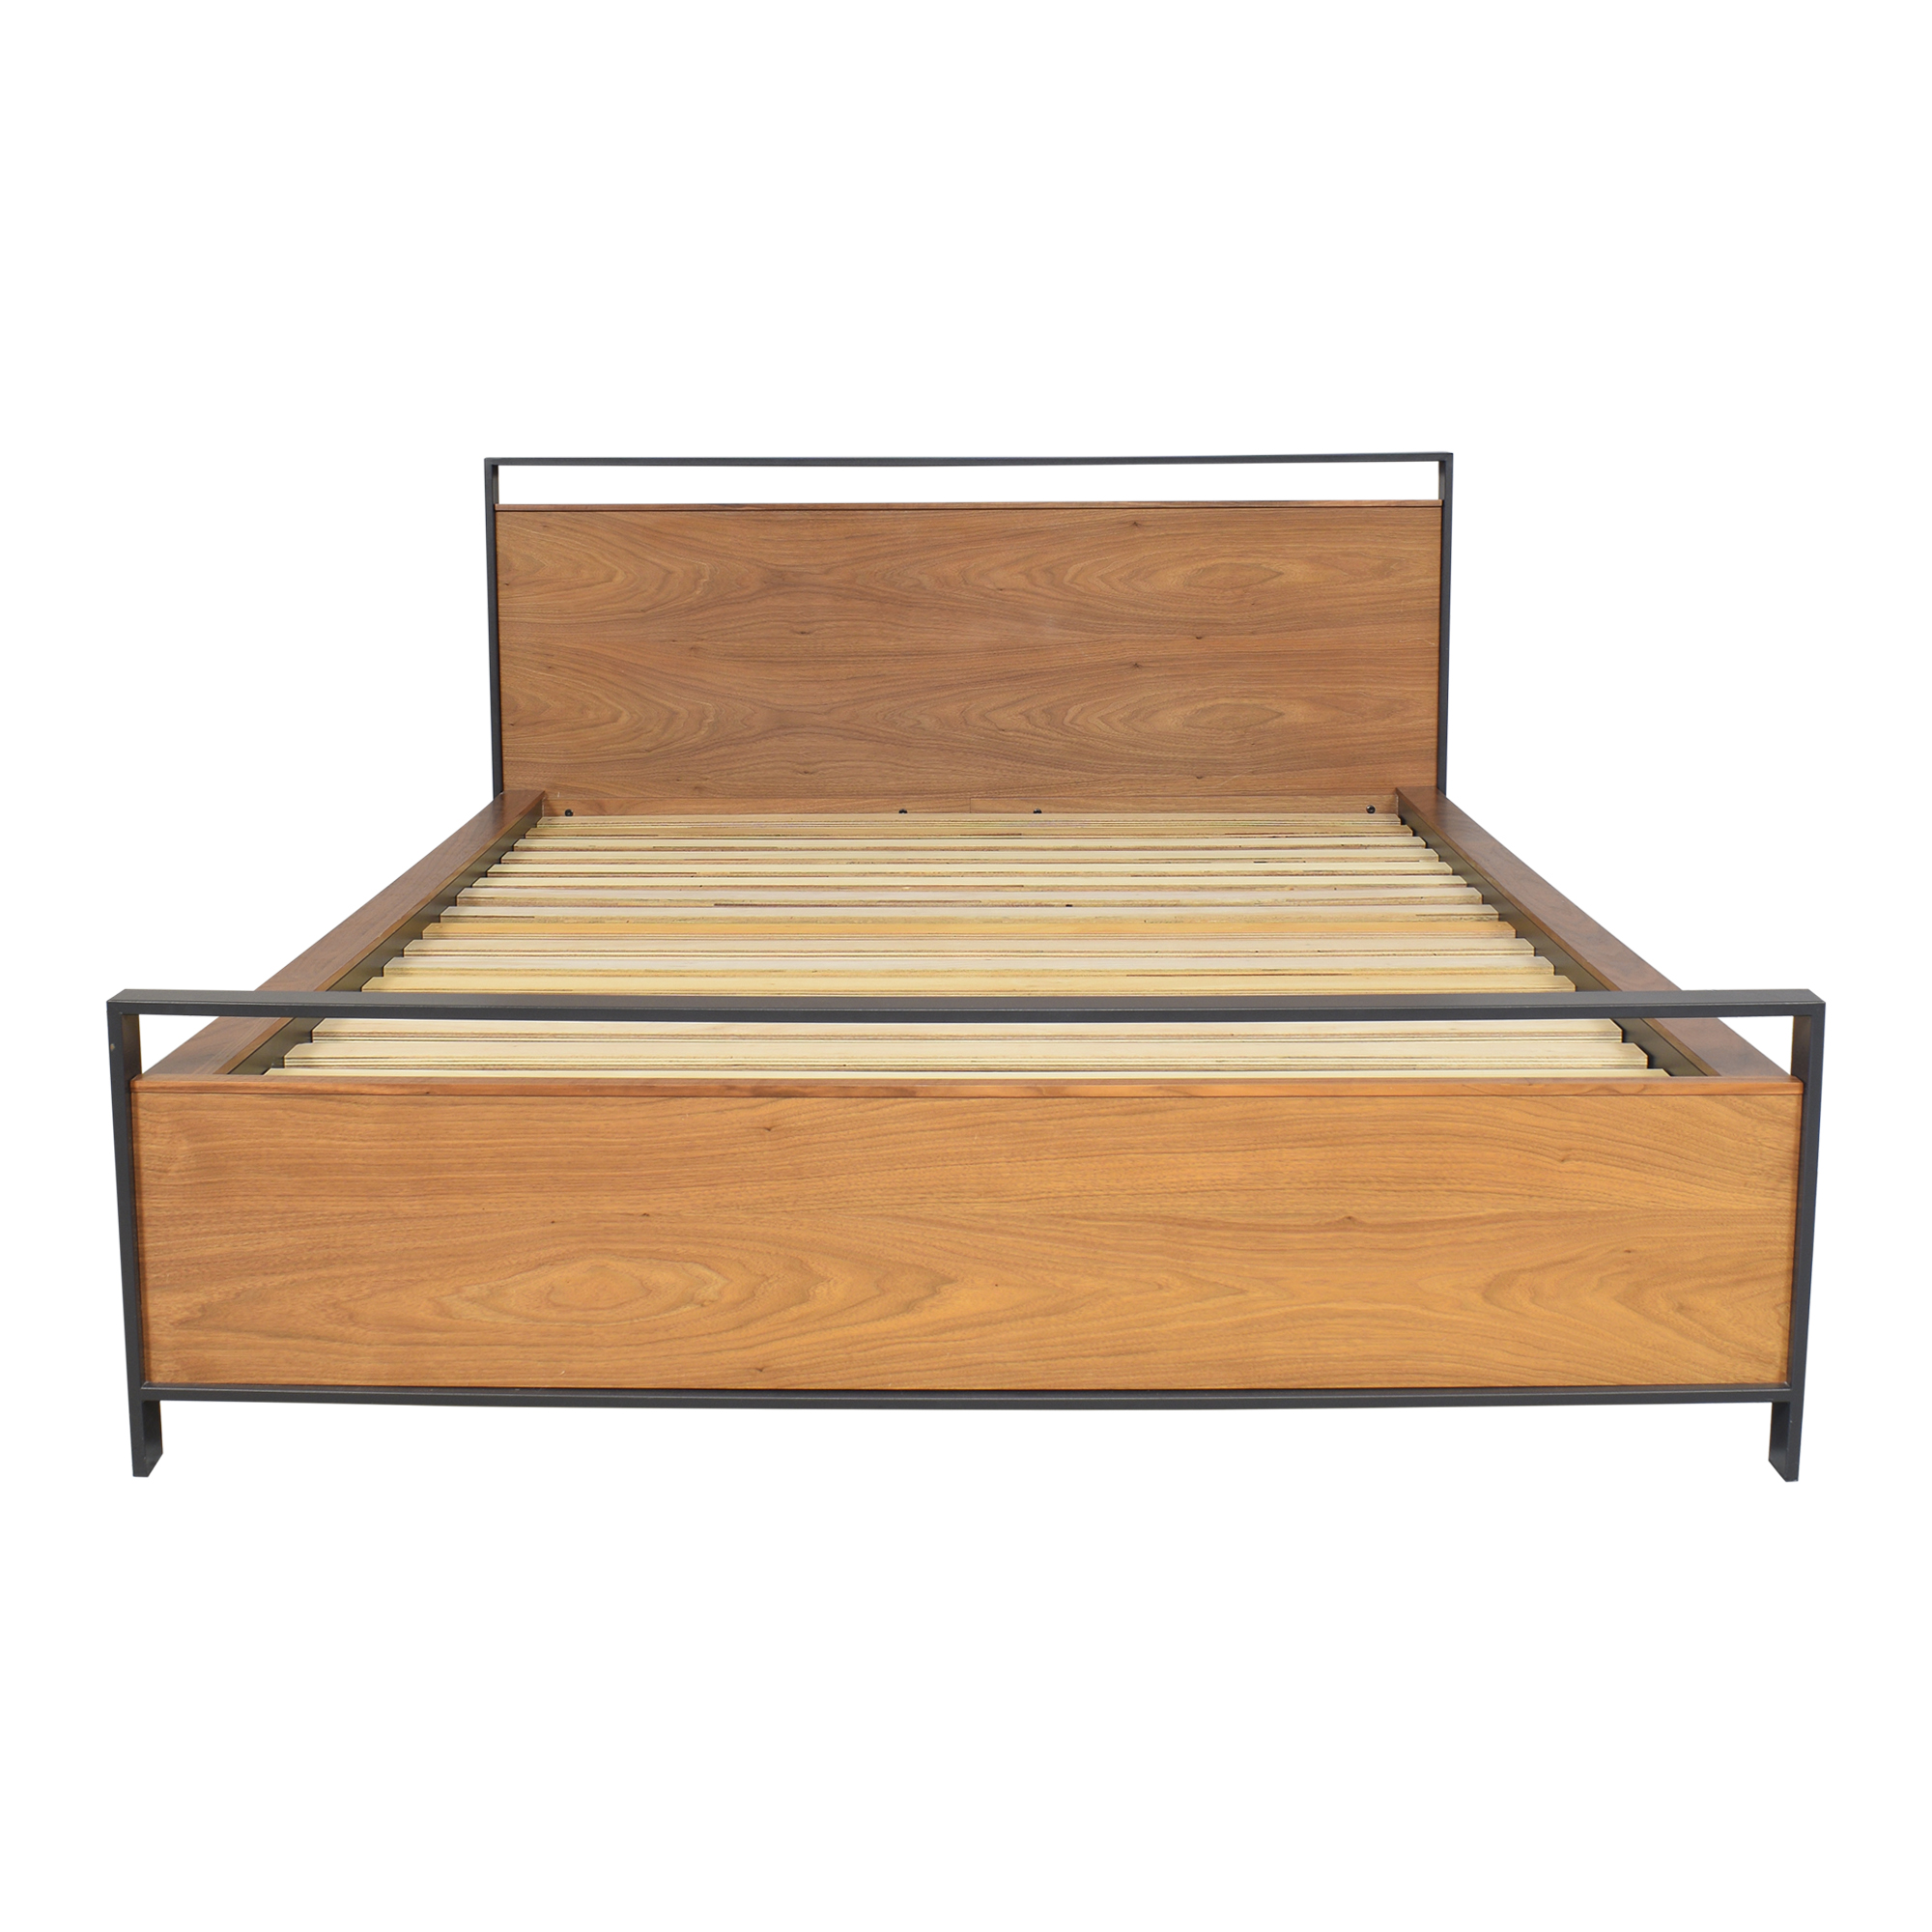 Crate & Barrel Crate & Barrel Bowery Storage Queen Bed dimensions